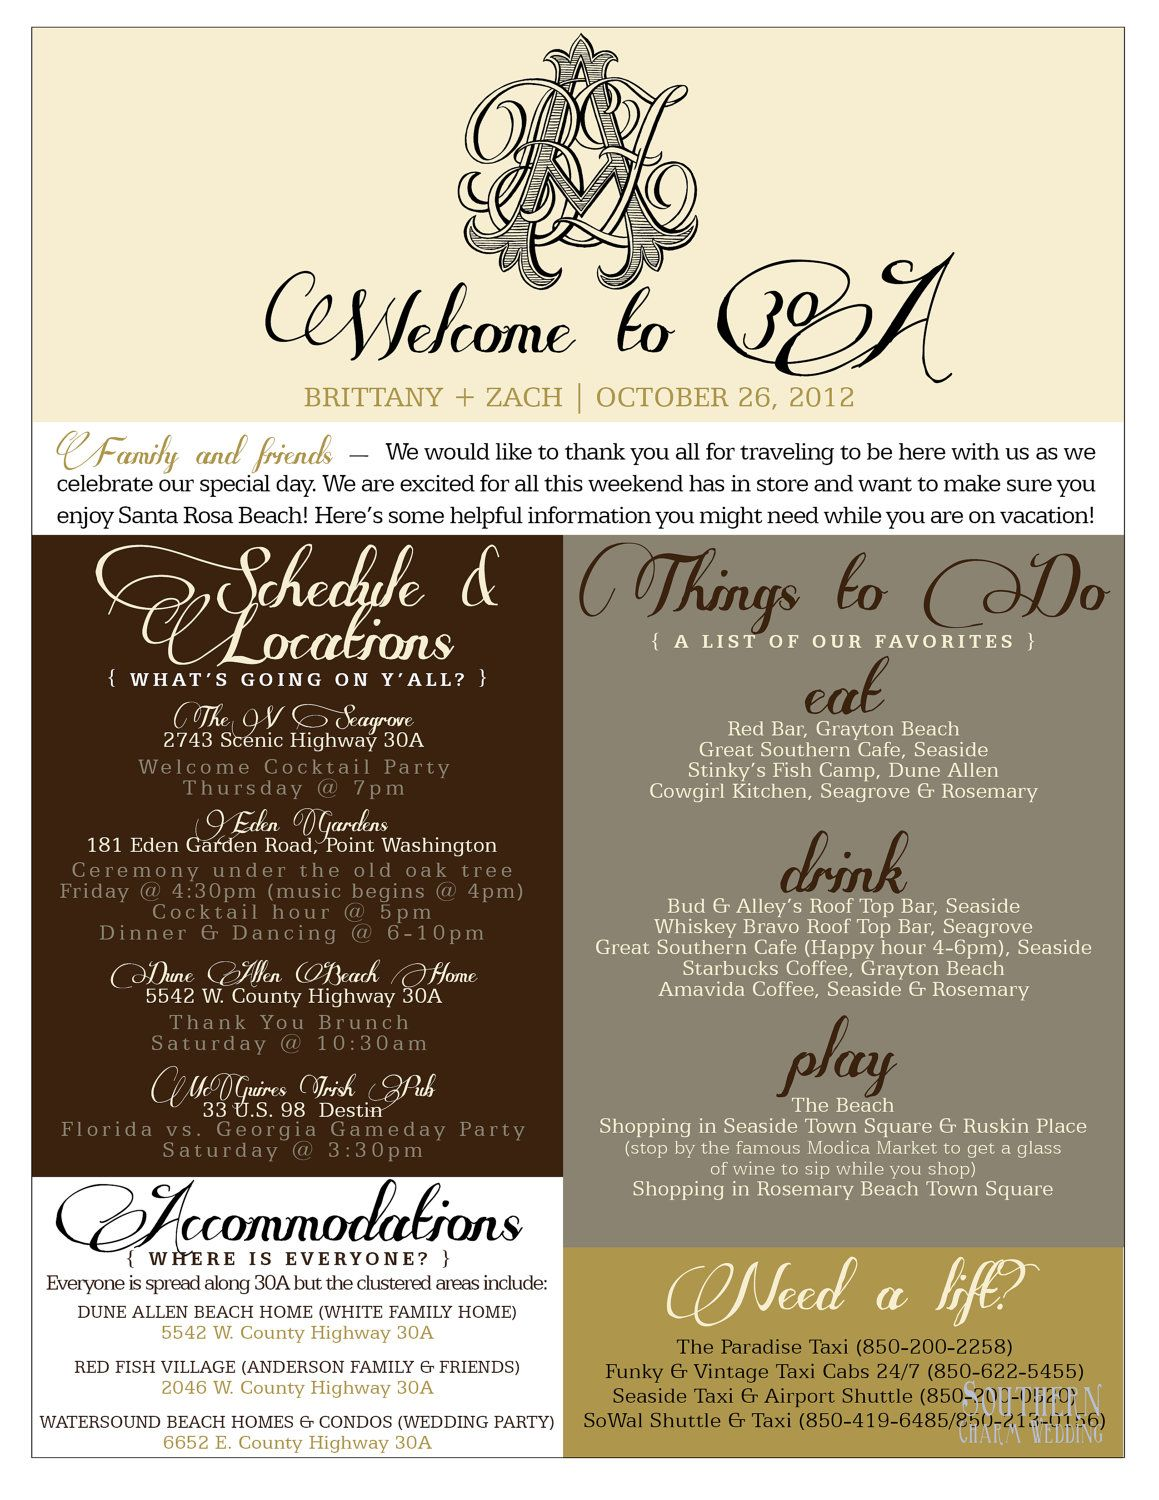 welcome bag information sheet 55 on etsy - Glass Sheet Cafe 2015